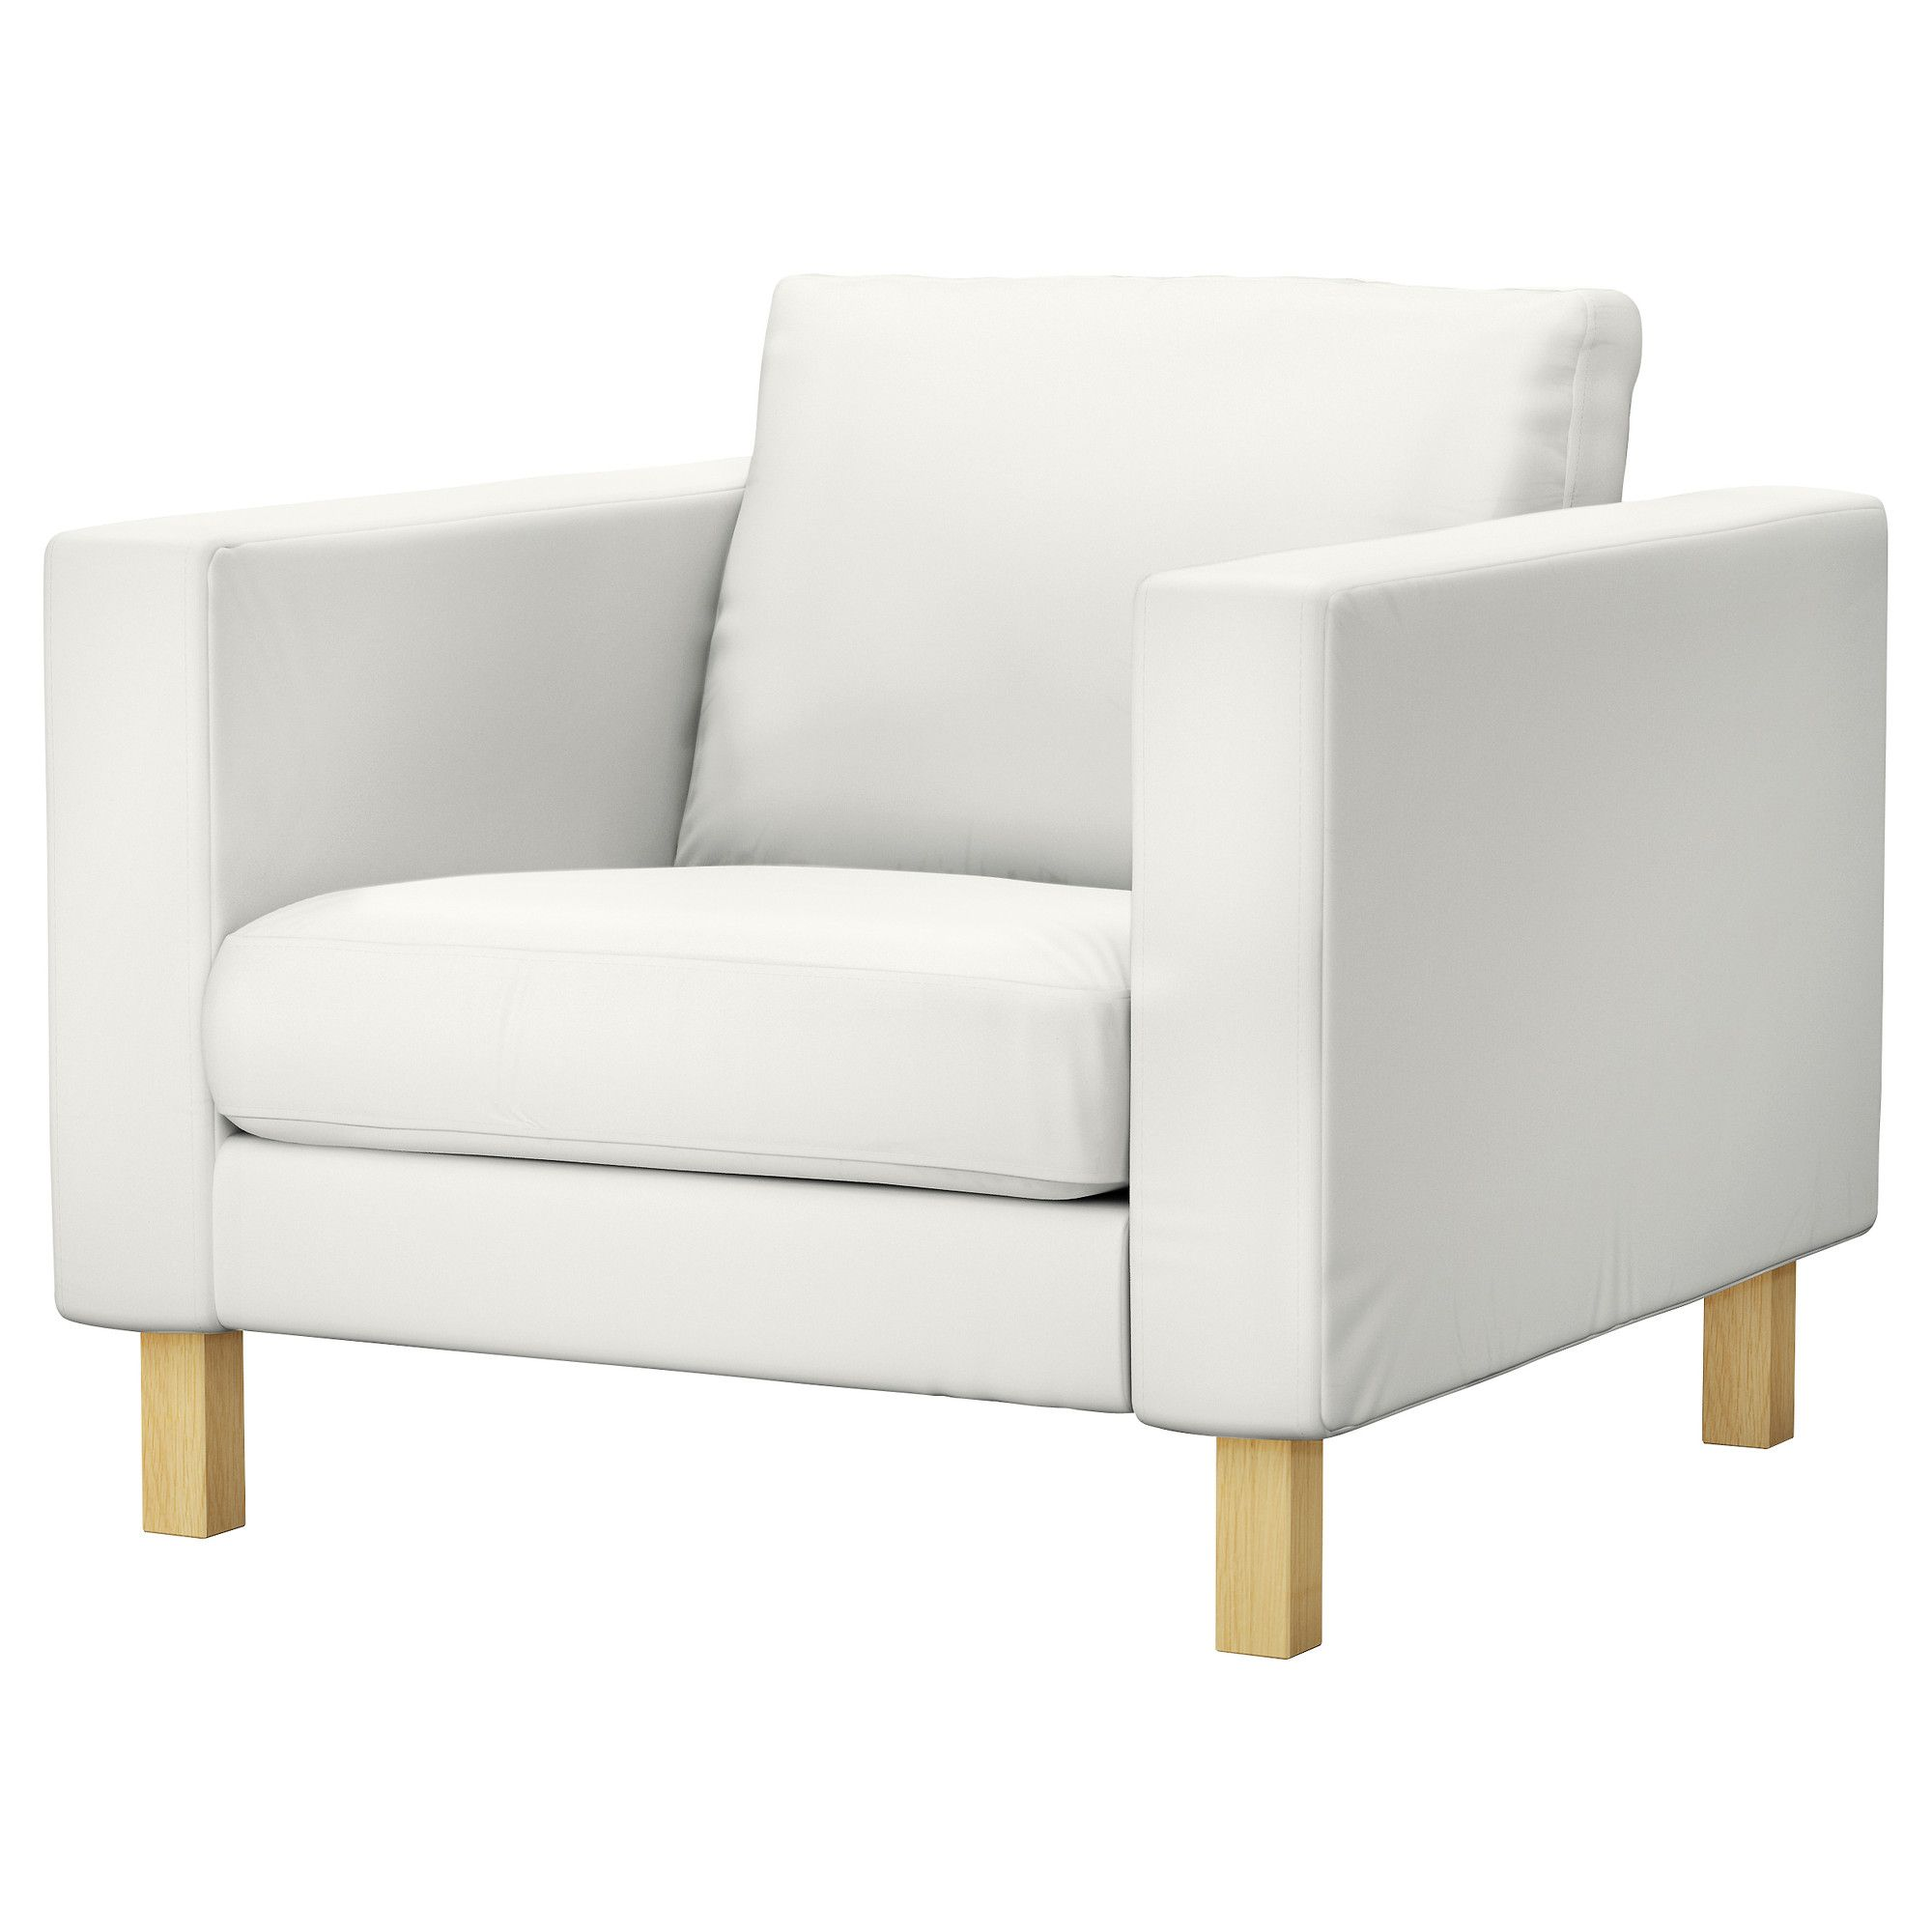 Incredible Karlstad Armchair Blekinge White Ikea In 2019 Short Links Chair Design For Home Short Linksinfo